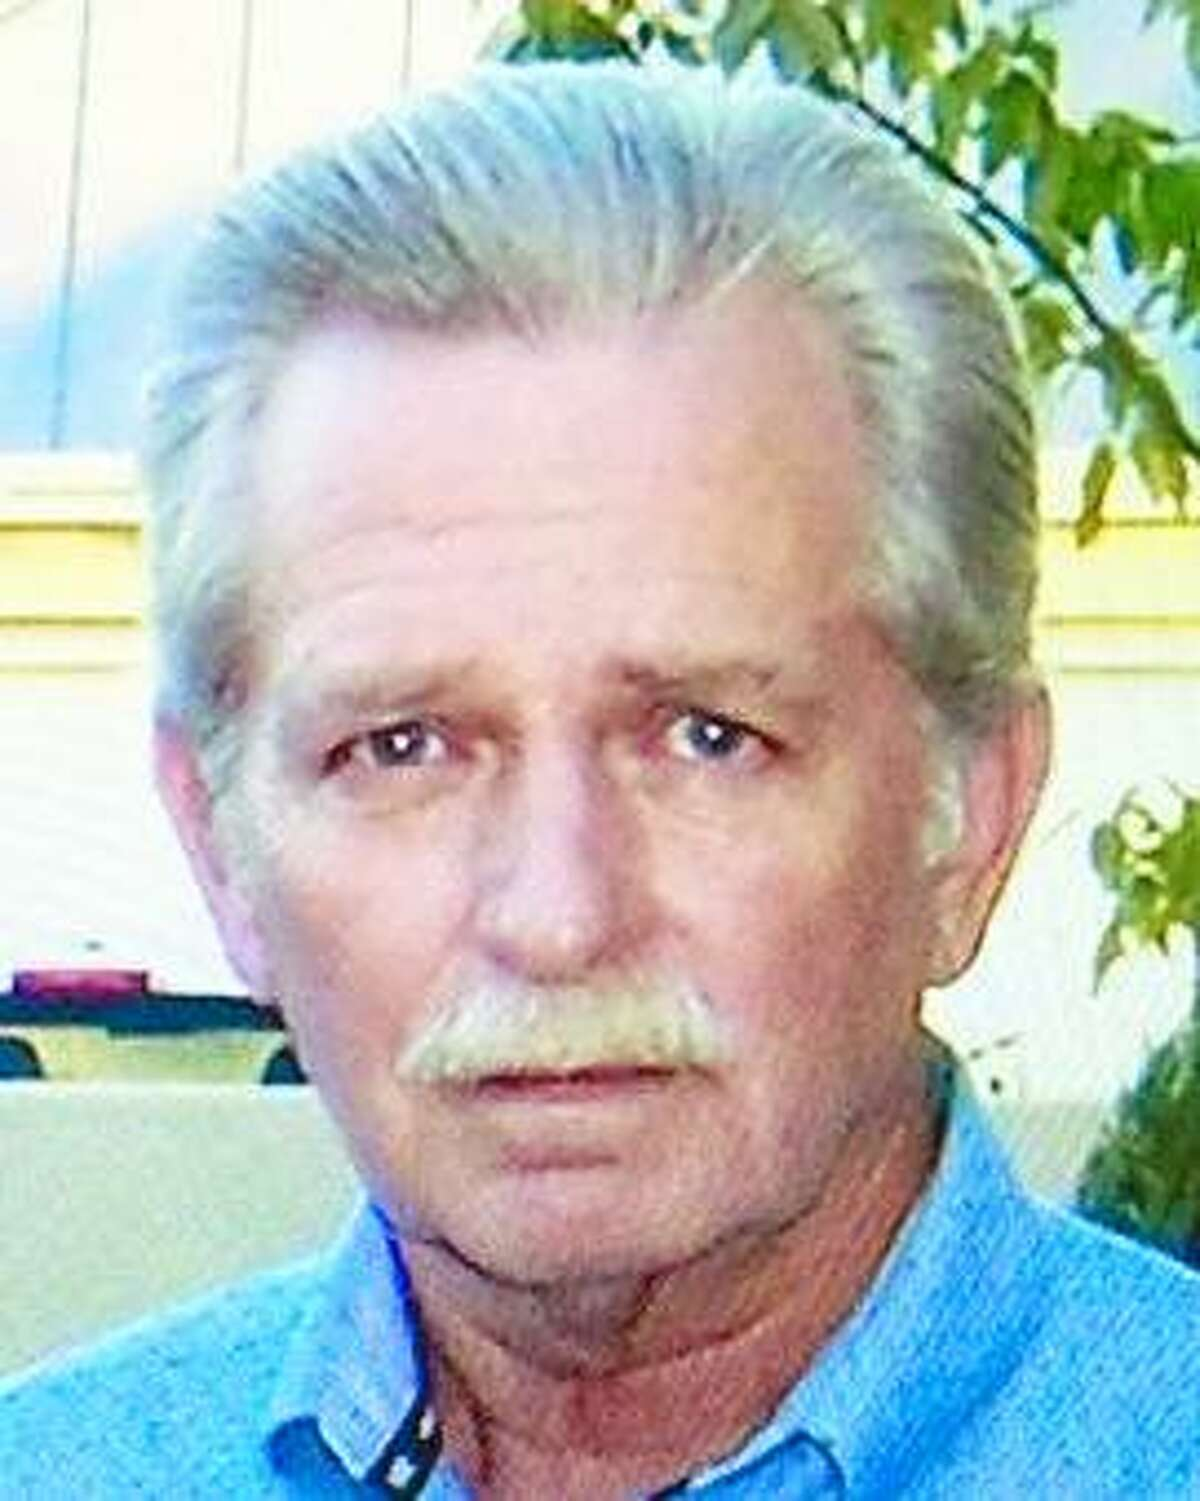 Leroy Richter, who owned and operated Richter's Antler Cafe in Spring Branch, died Dec. 11, 2015, in San Antonio.